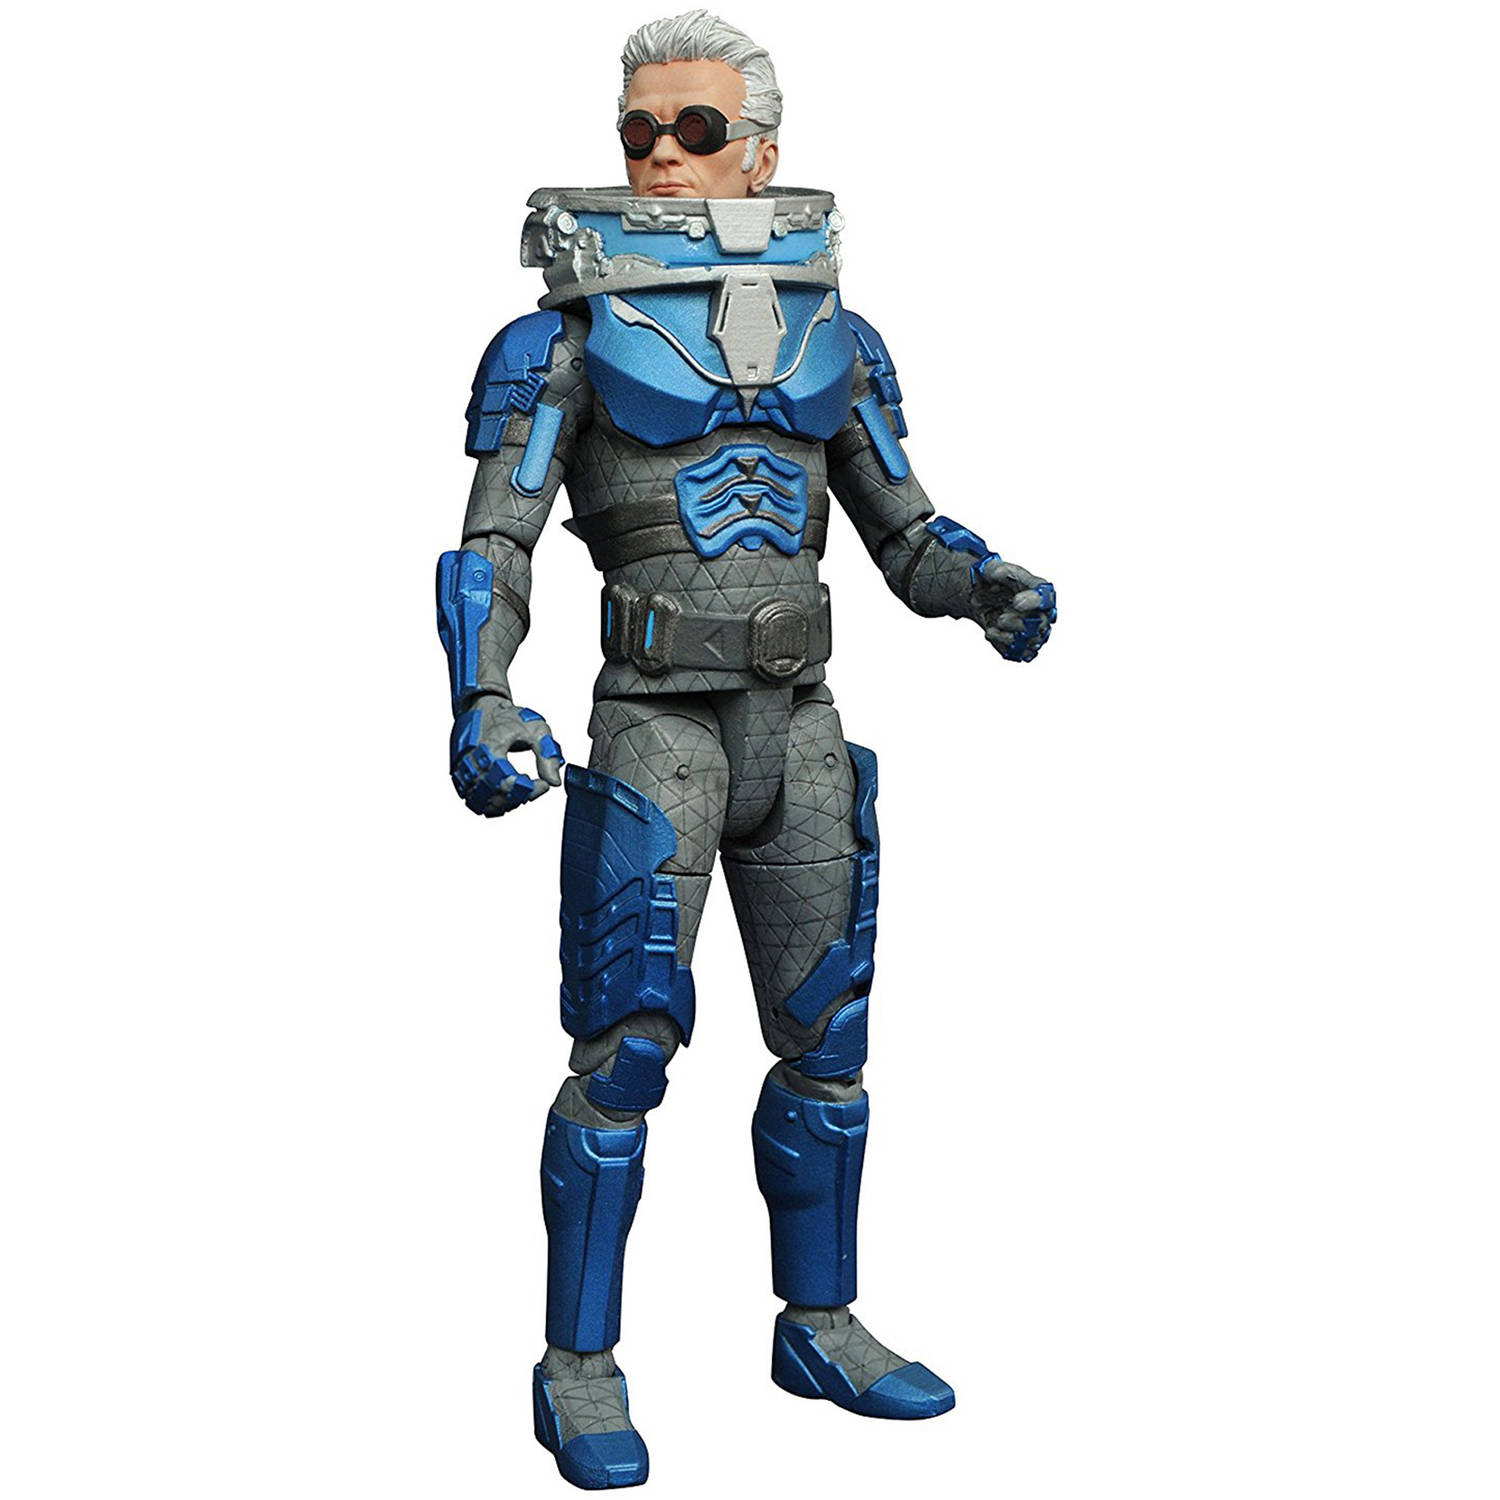 Diamond Select Toys Gotham Select Series 4 Mr Freeze Action Figure by DIAMOND SELECT TOYS LLC